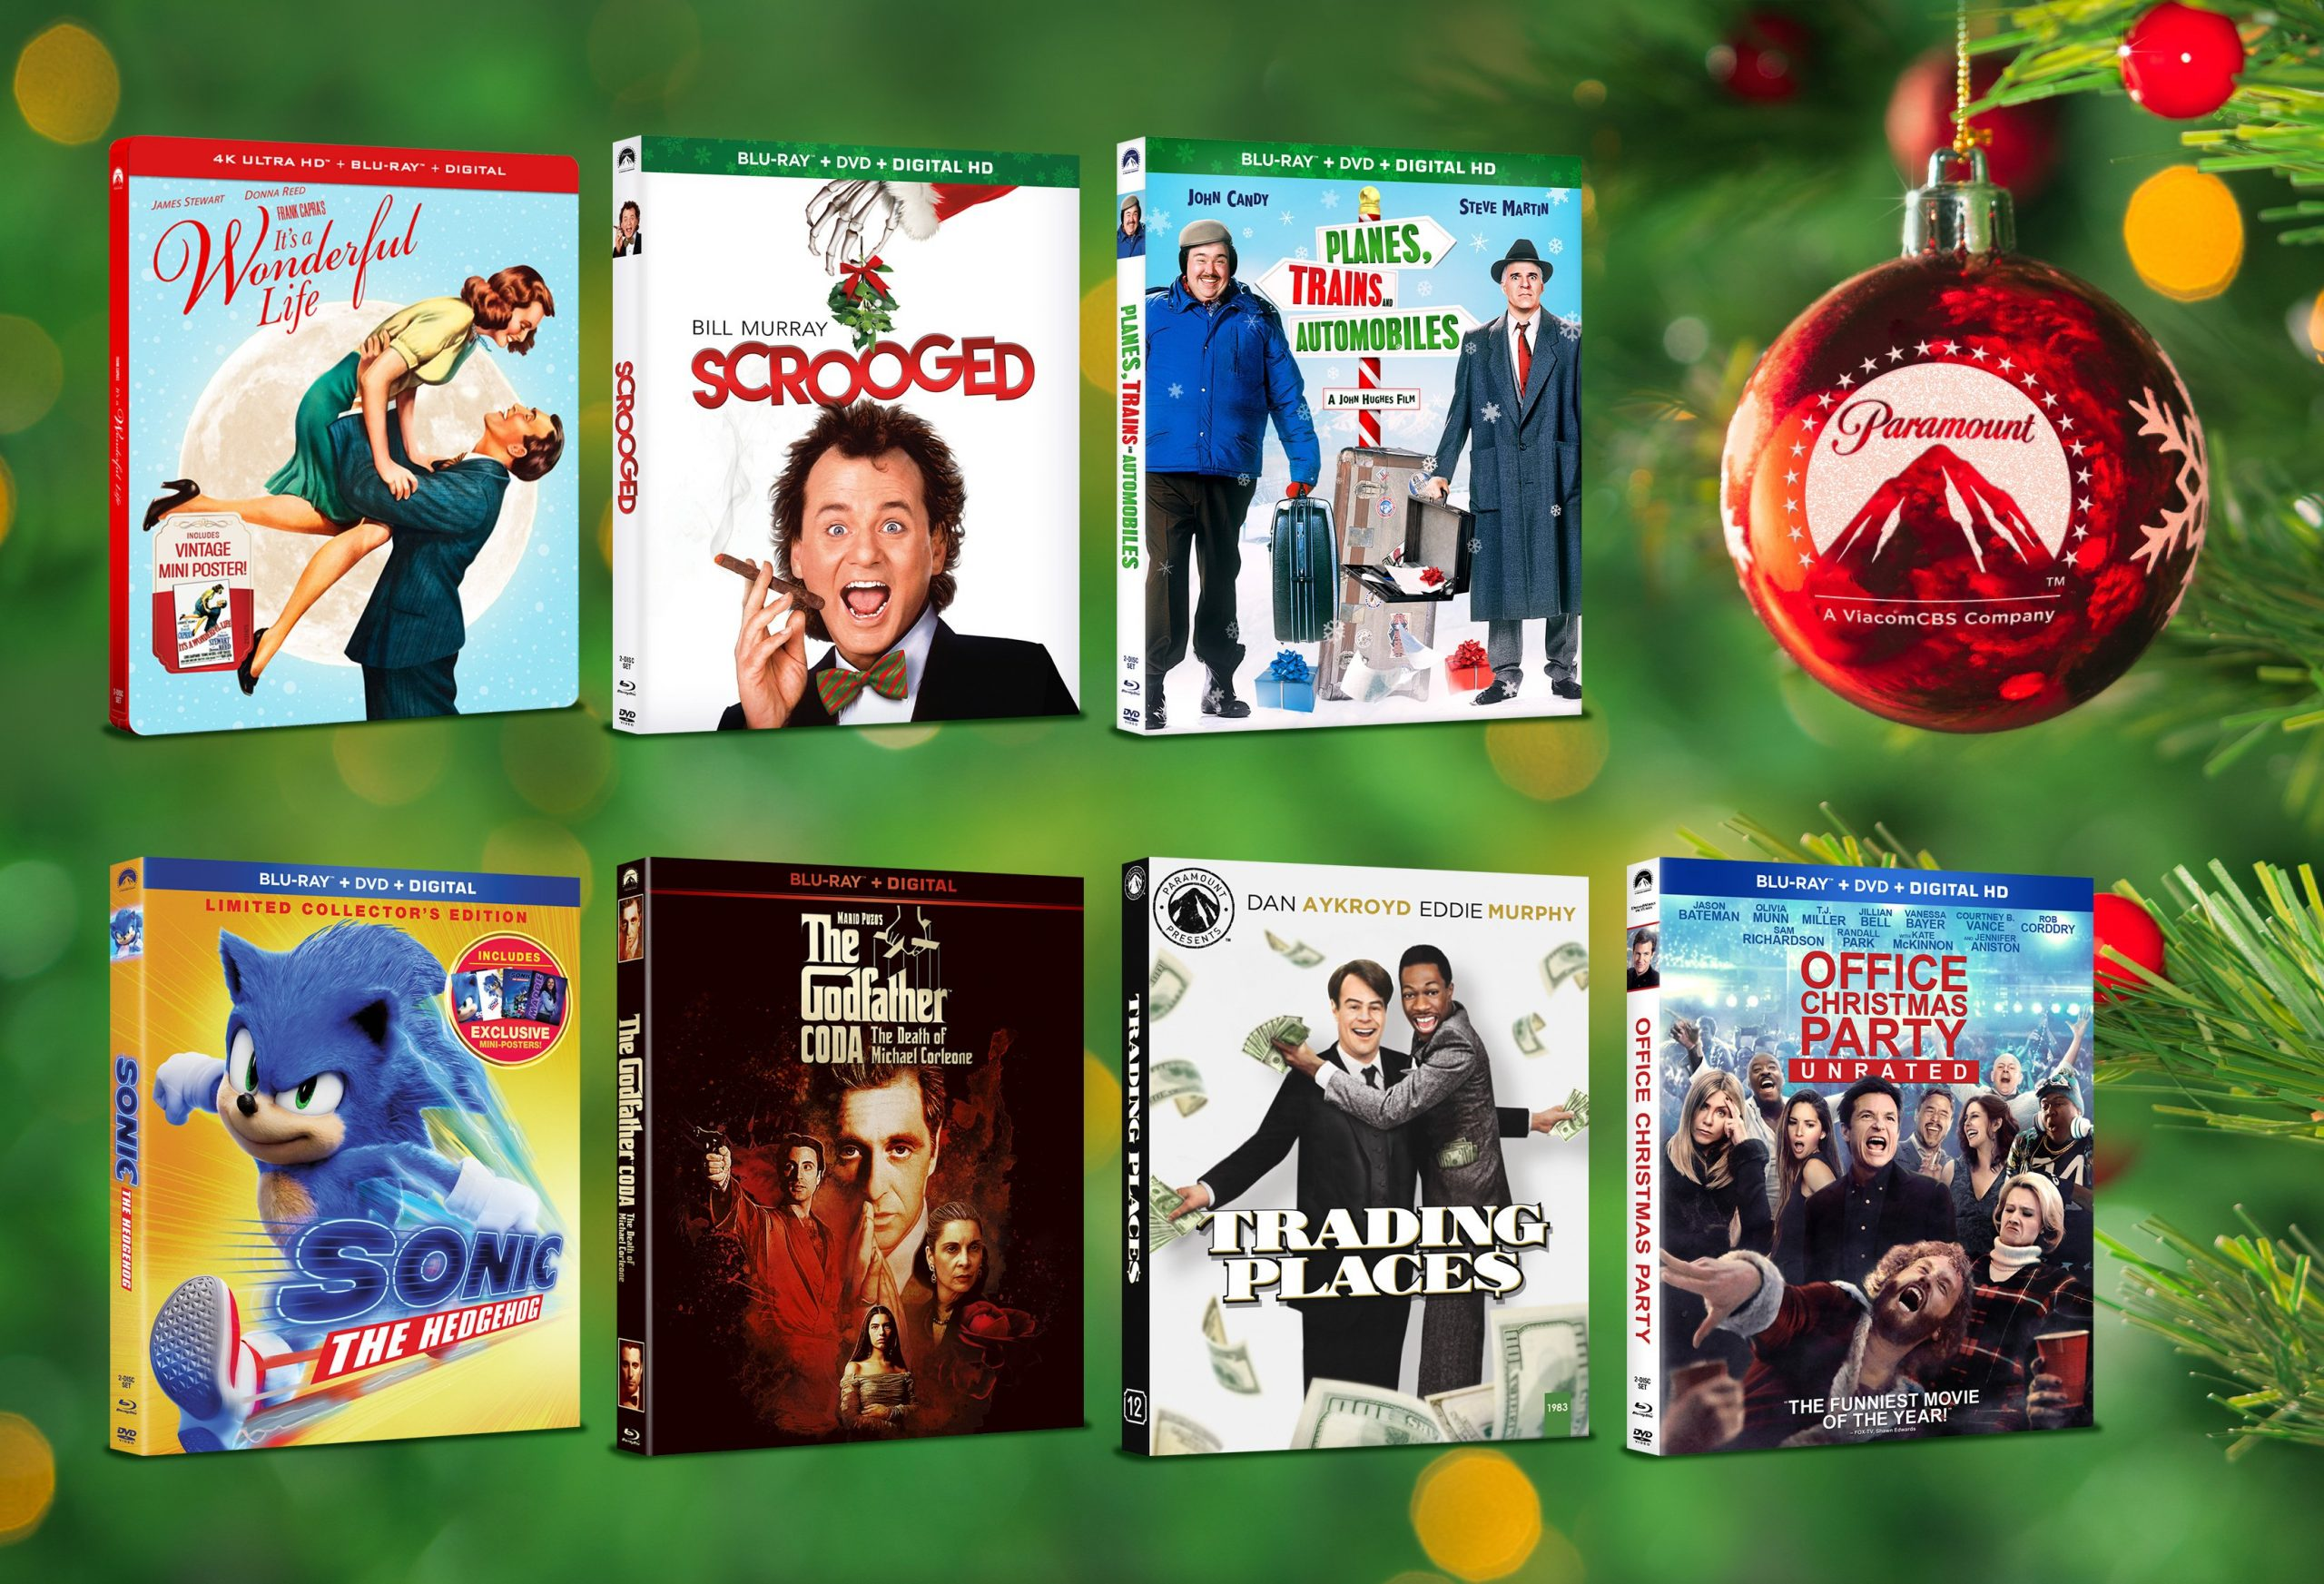 Enter ComingSoon's Holiday Giveaway From Paramount!